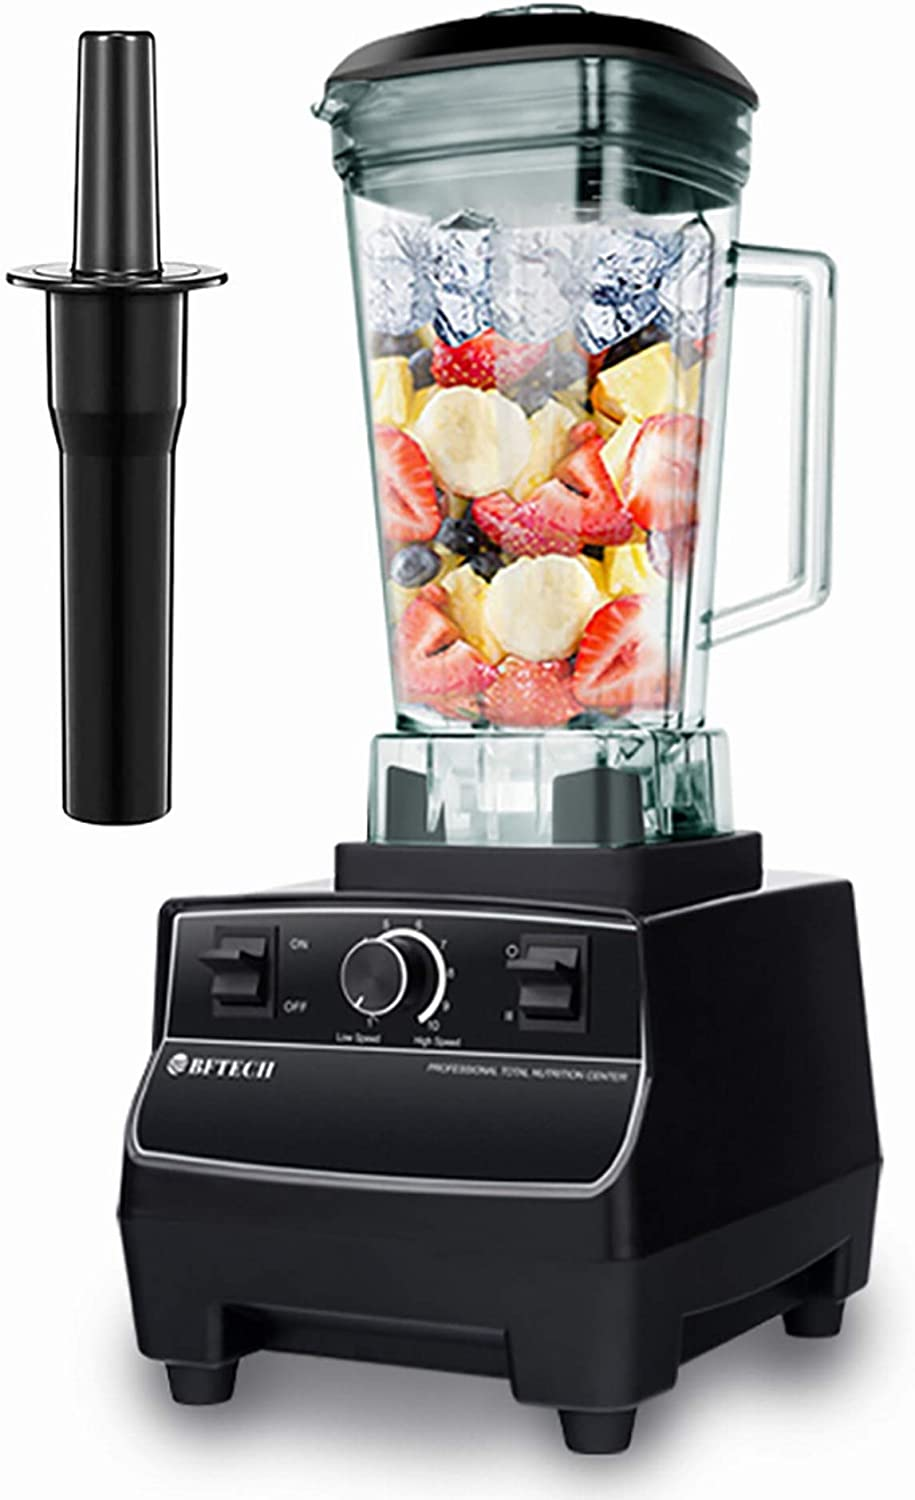 BFTECH PB2200 Explorian Blender Professional-Grade Commercial 2L 2200 Watt ,Total Crushing Technology for Smoothies, Ice and Frozen Fruit (Black)